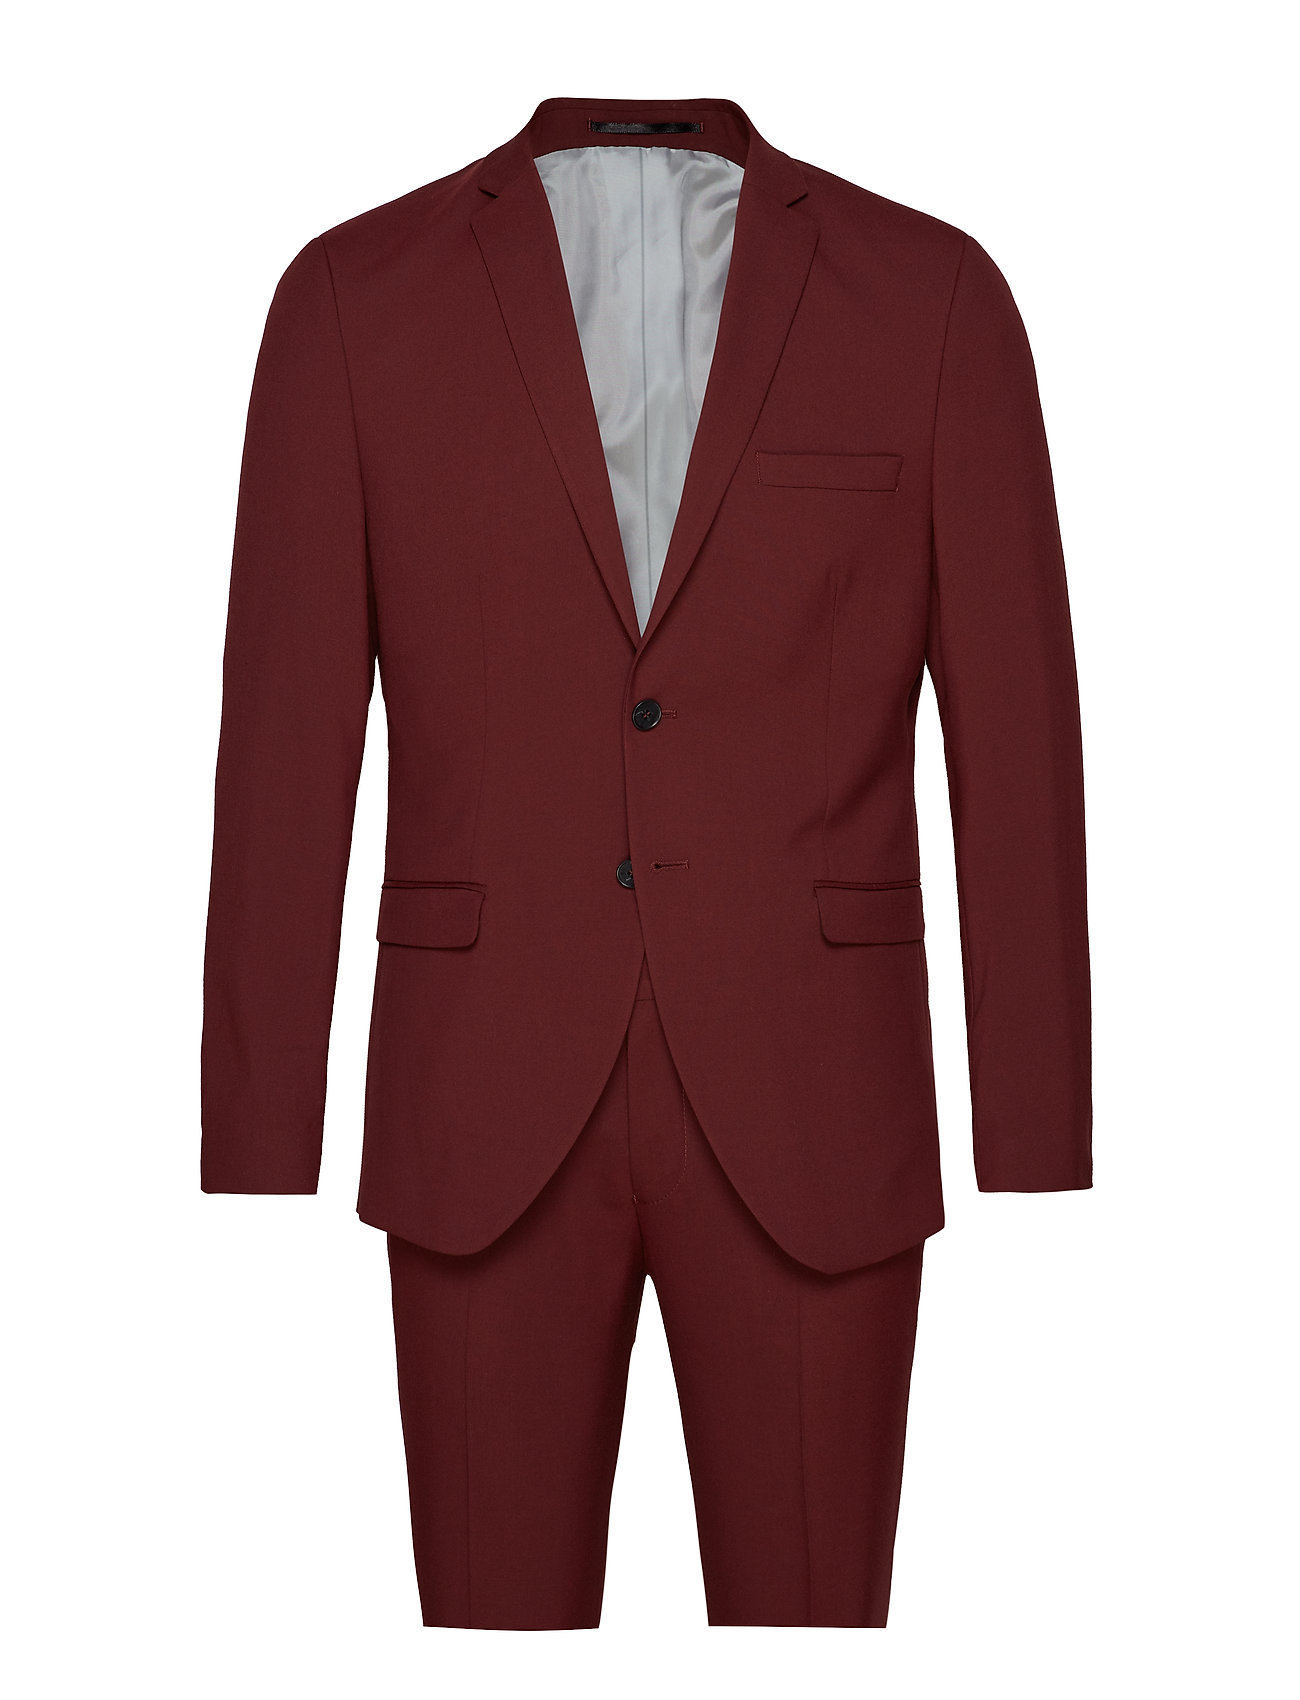 Selected Homme SLHSLIM-MYLOLOGAN DK RED SUIT B EX - BURGUNDY